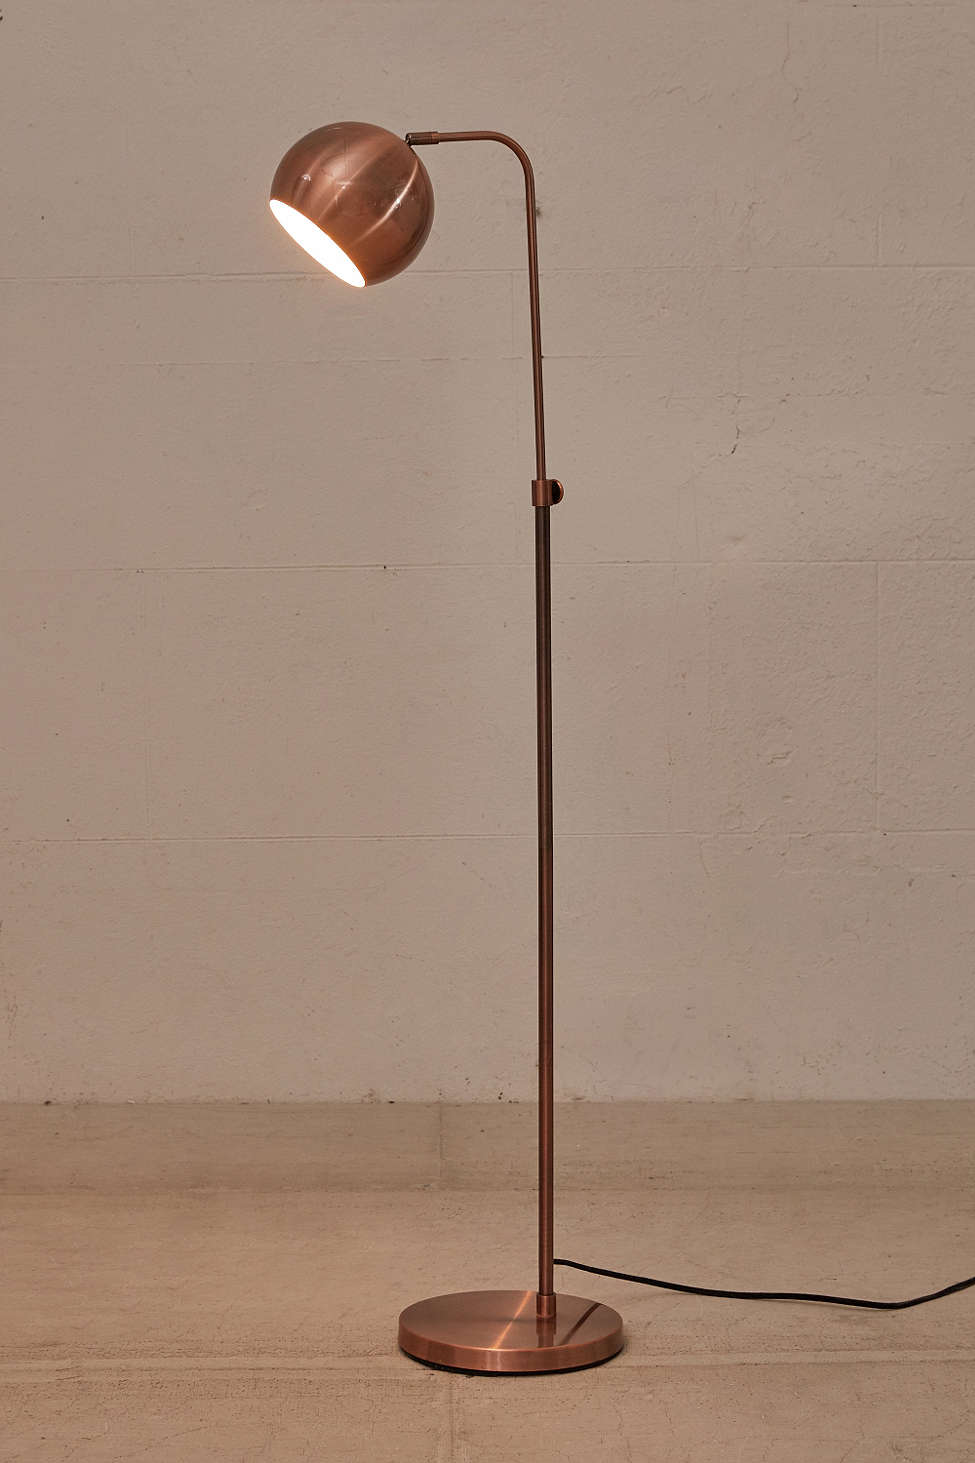 Gumball Floor Lamp in Copper, $159